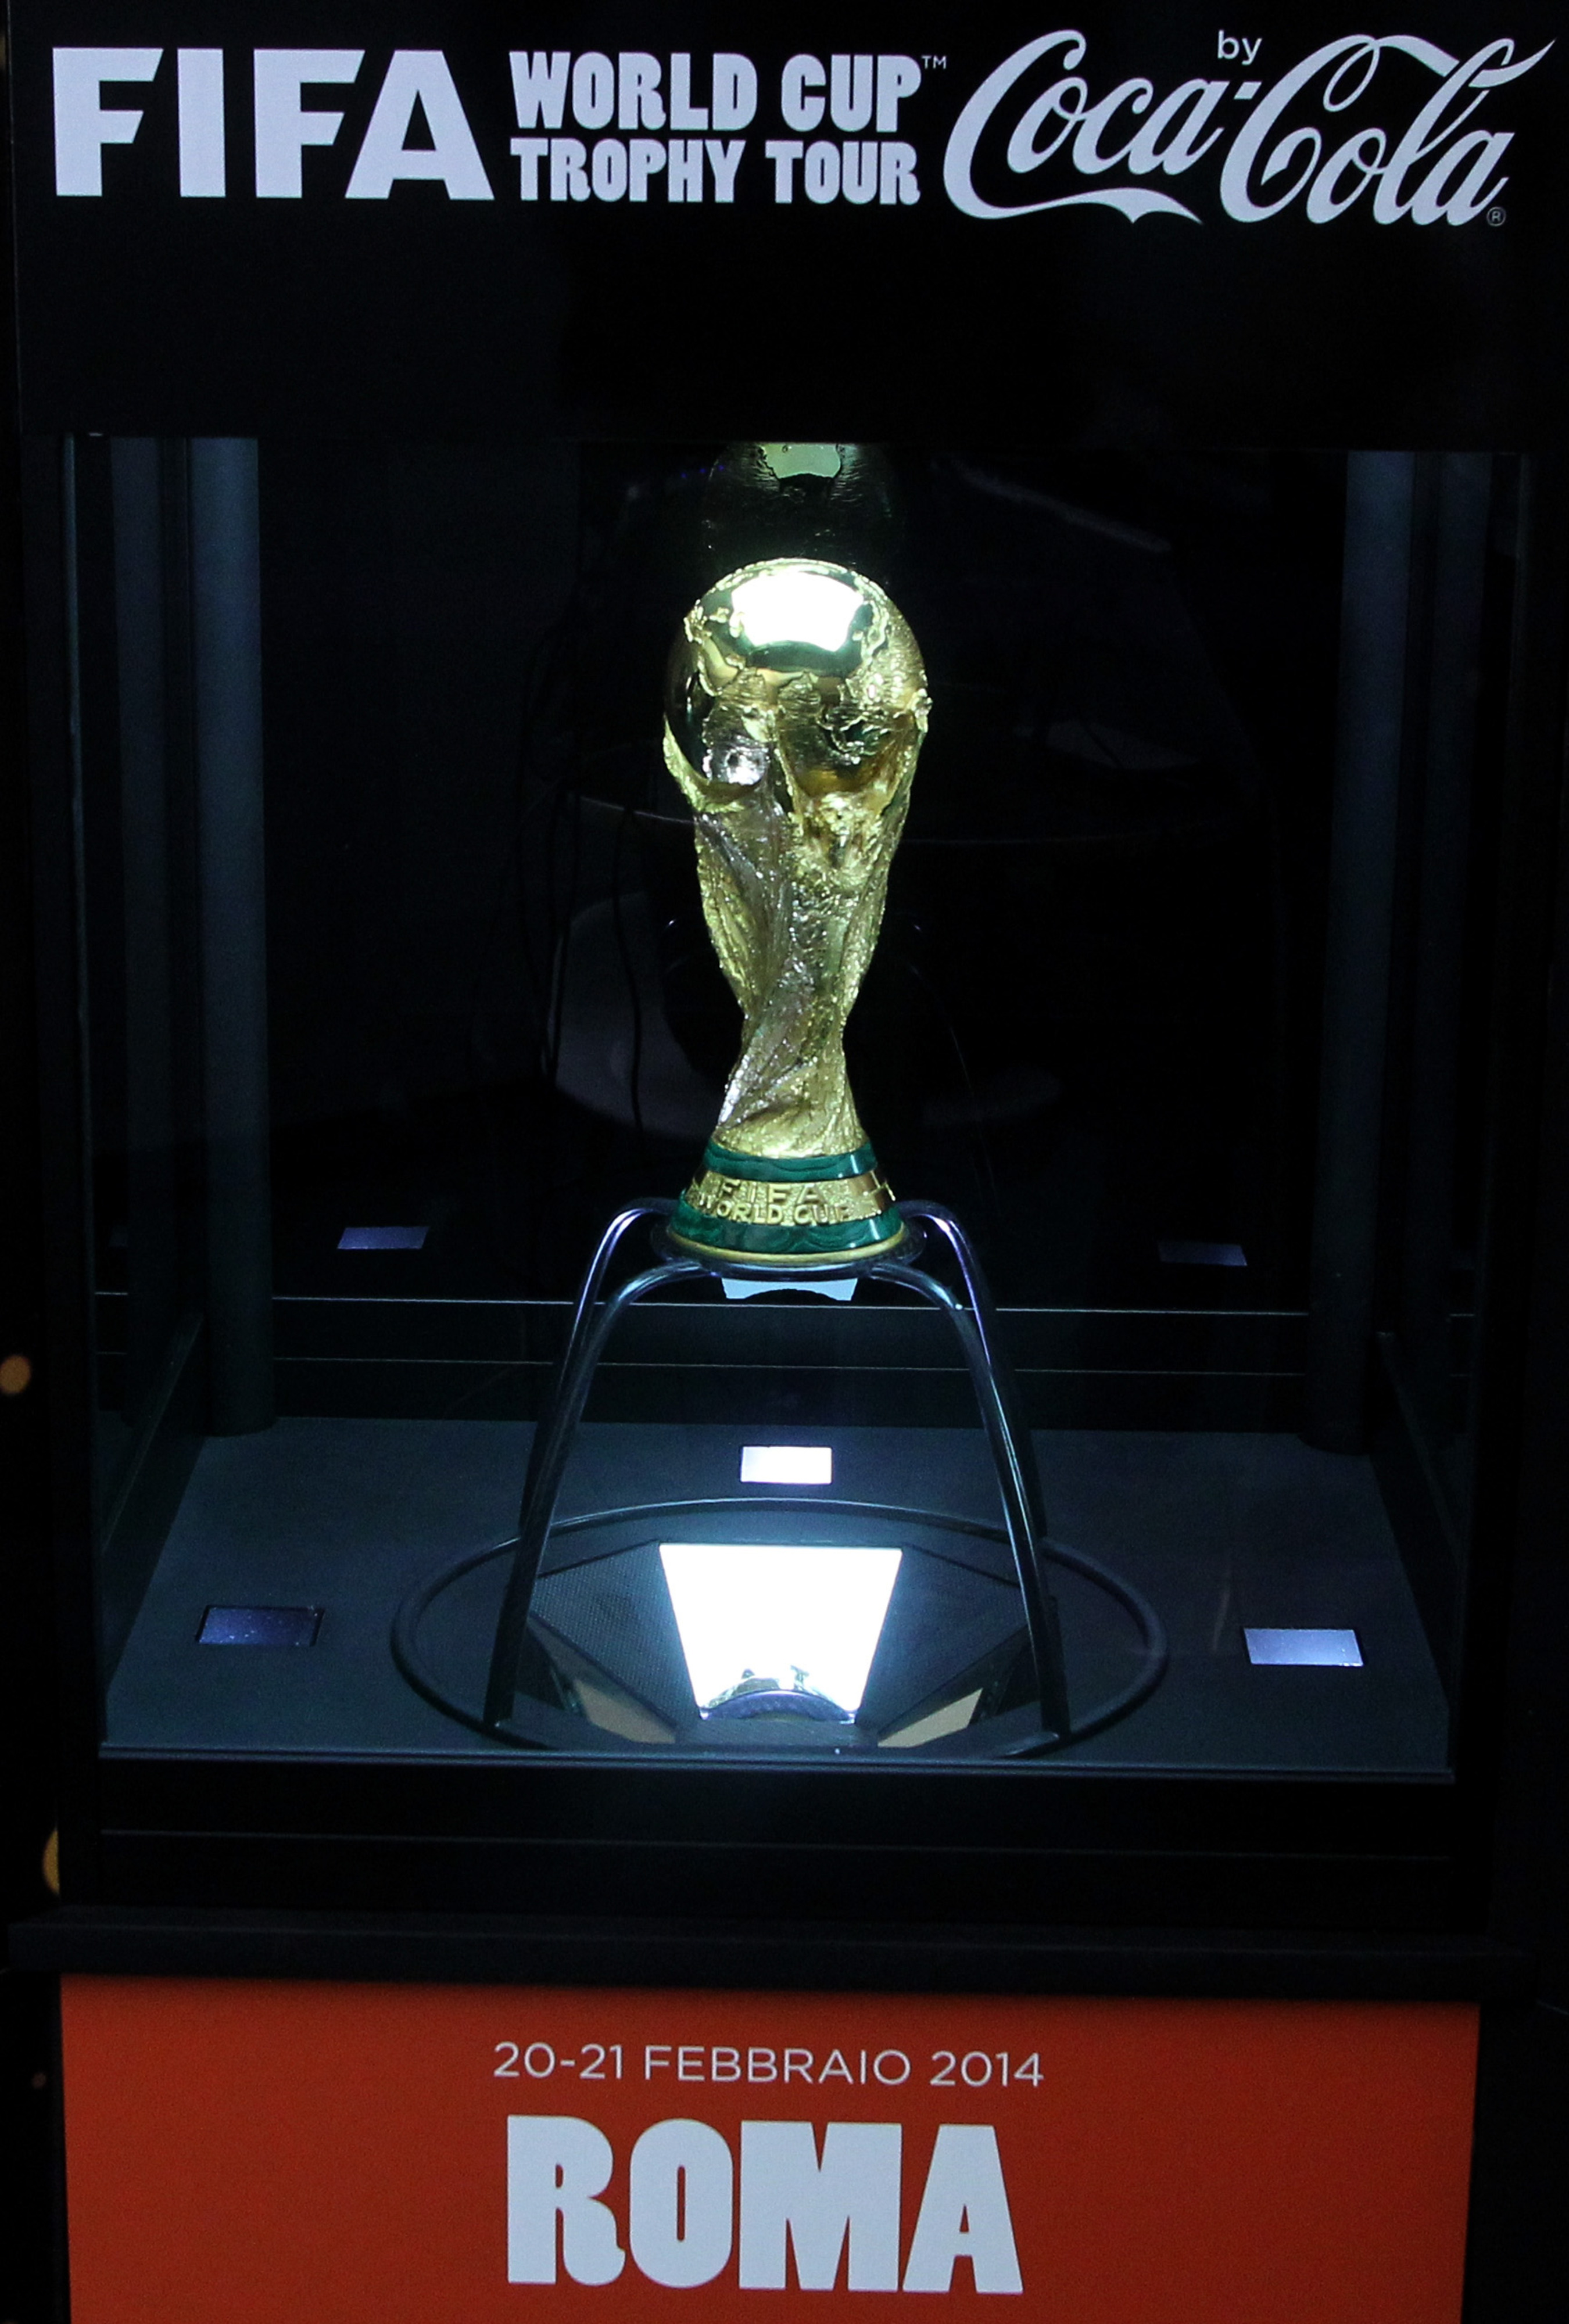 Predicting the World Cup, through the power of math